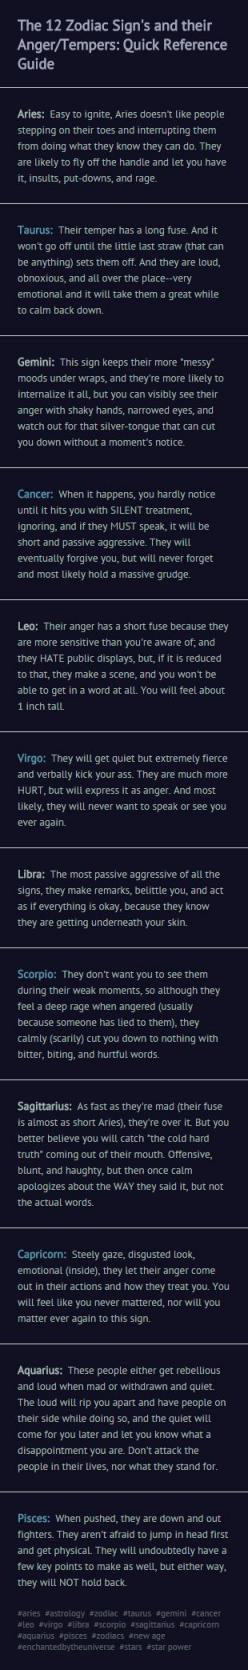 The zodiac signs & their anger/tempers: So incredibly accurate for all the signs...not just mine.: Zodiac Signs, Anger Tempers, Zodiac Cusp, Astrology Sign, Zodiac Quote, Astrology Gemini, Virgo